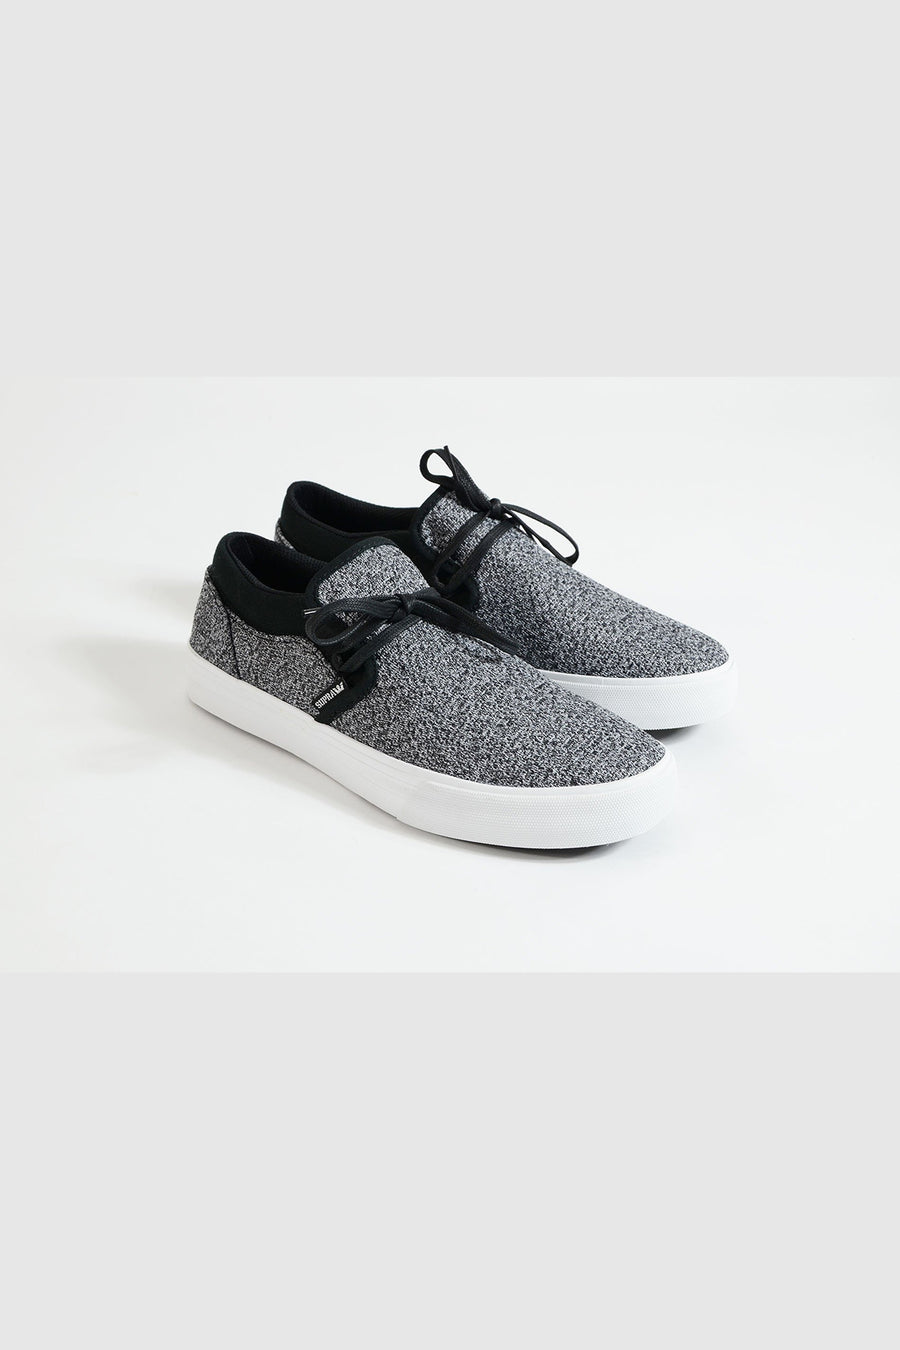 Supra - Kuba Low Top Sneaker in Asphaltgrau